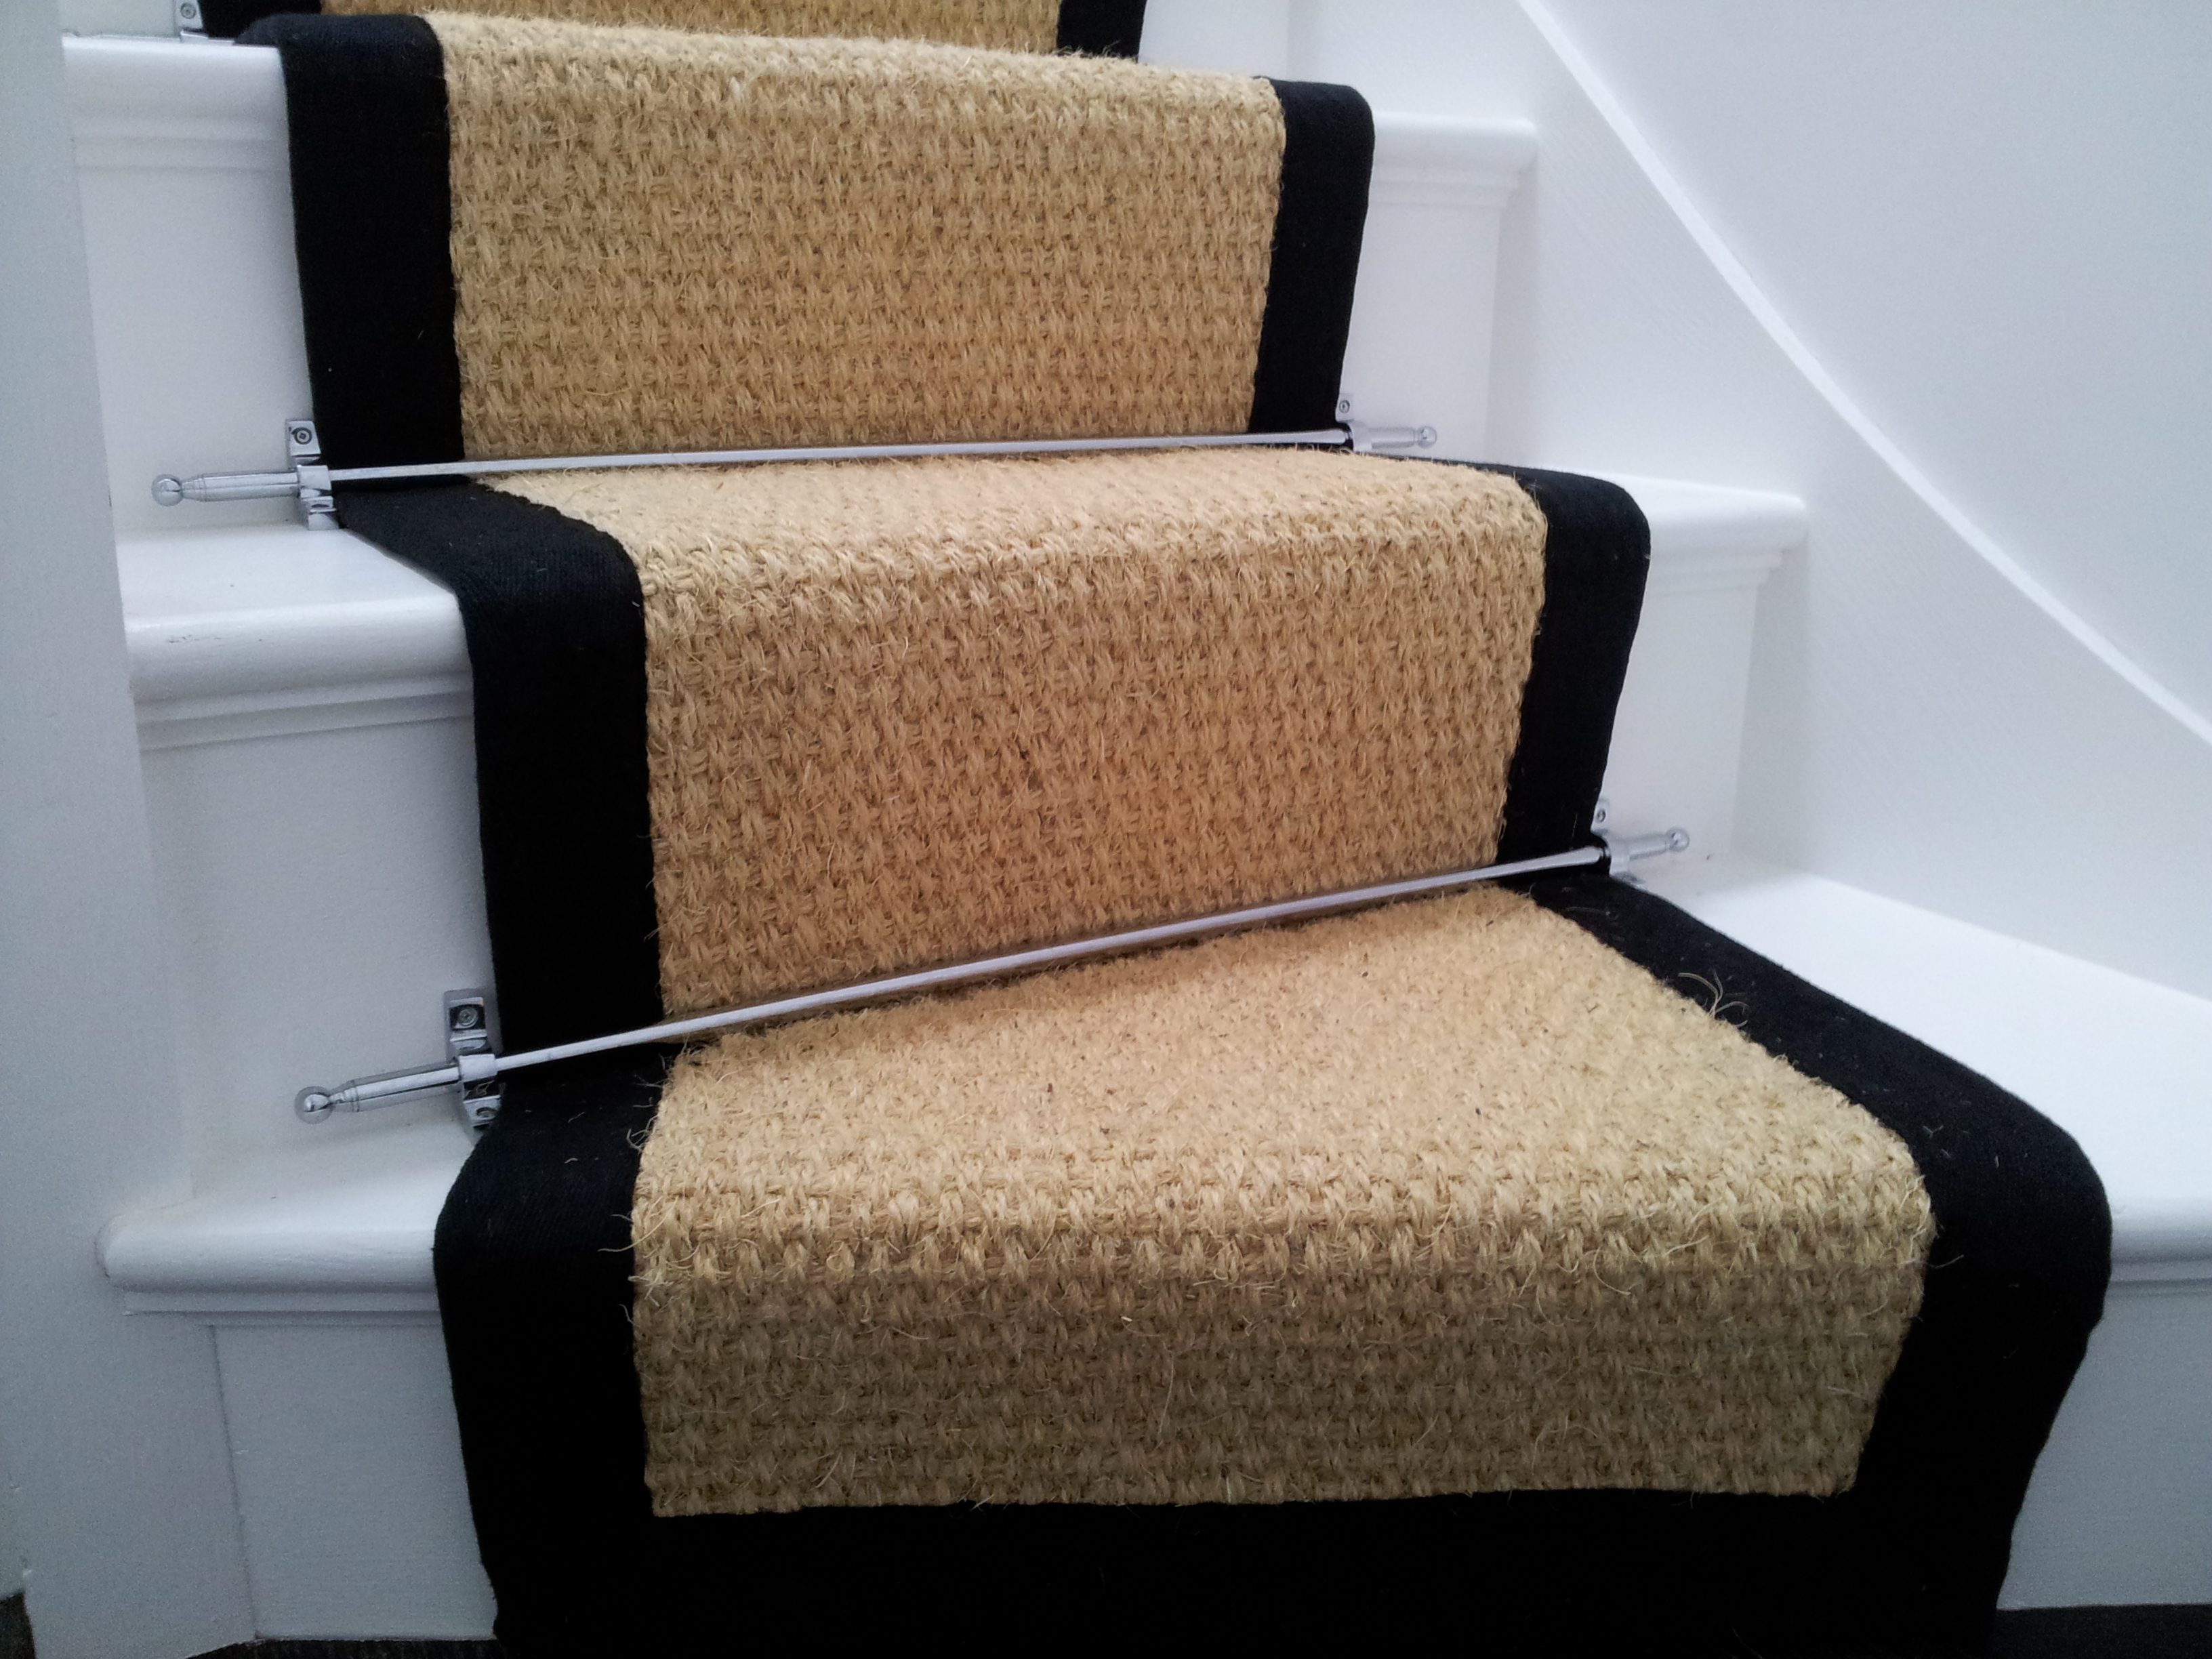 Stair Runner Gallery Wholesale amp Carpets In UK And